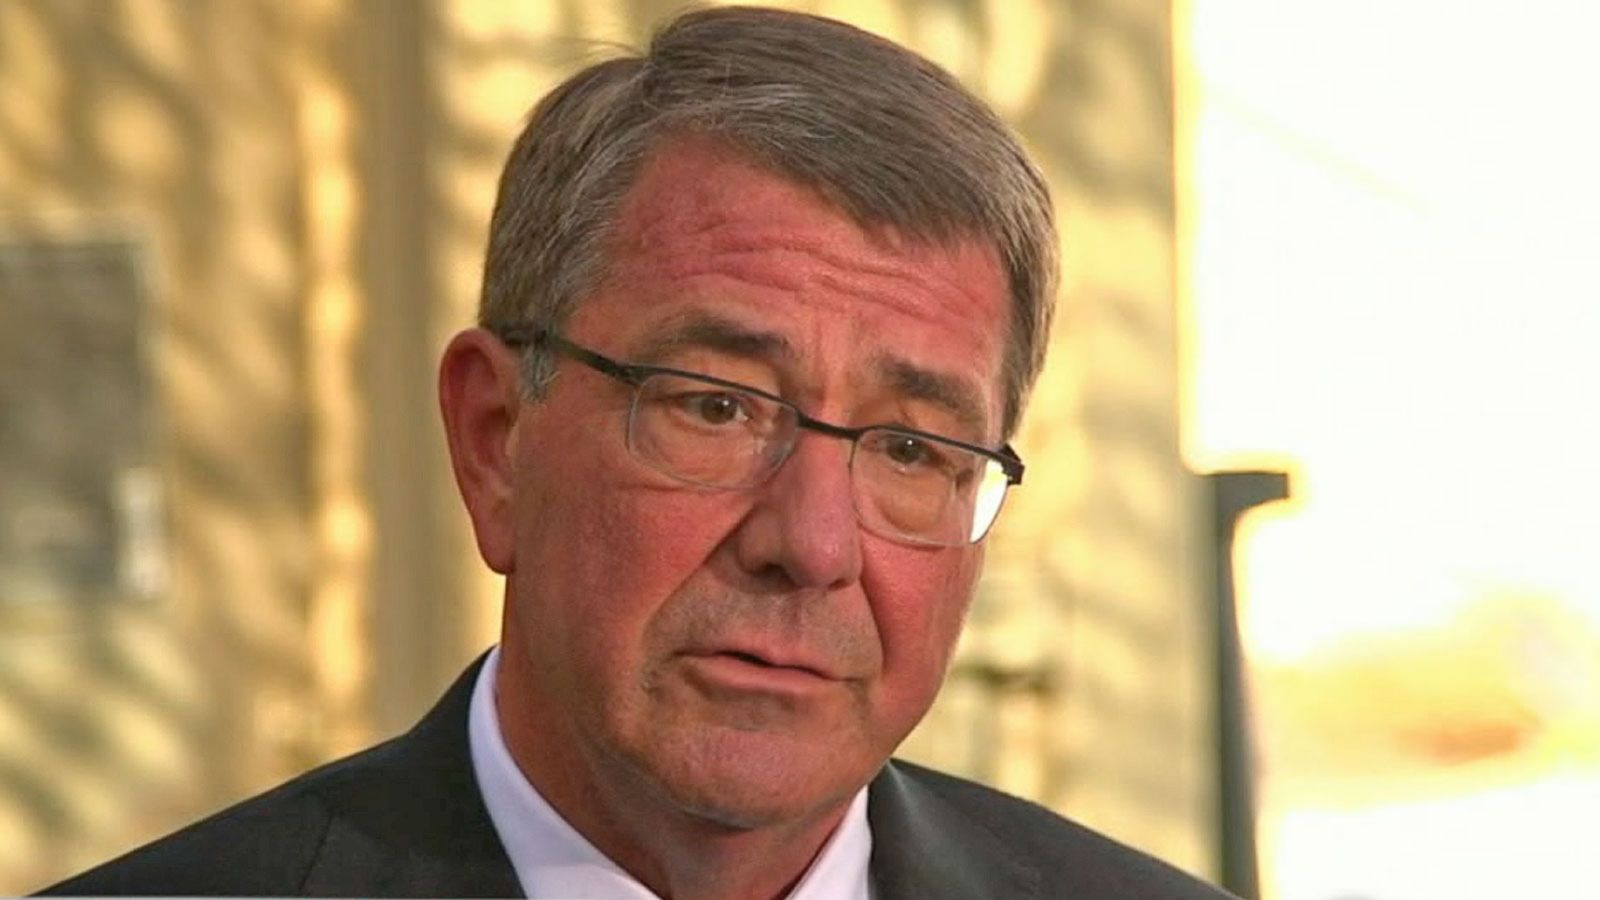 VIDEO: Defense Secretary Ash Carter on Fight Against ISIS: 'ISIL Will Surely Be Destroyed'